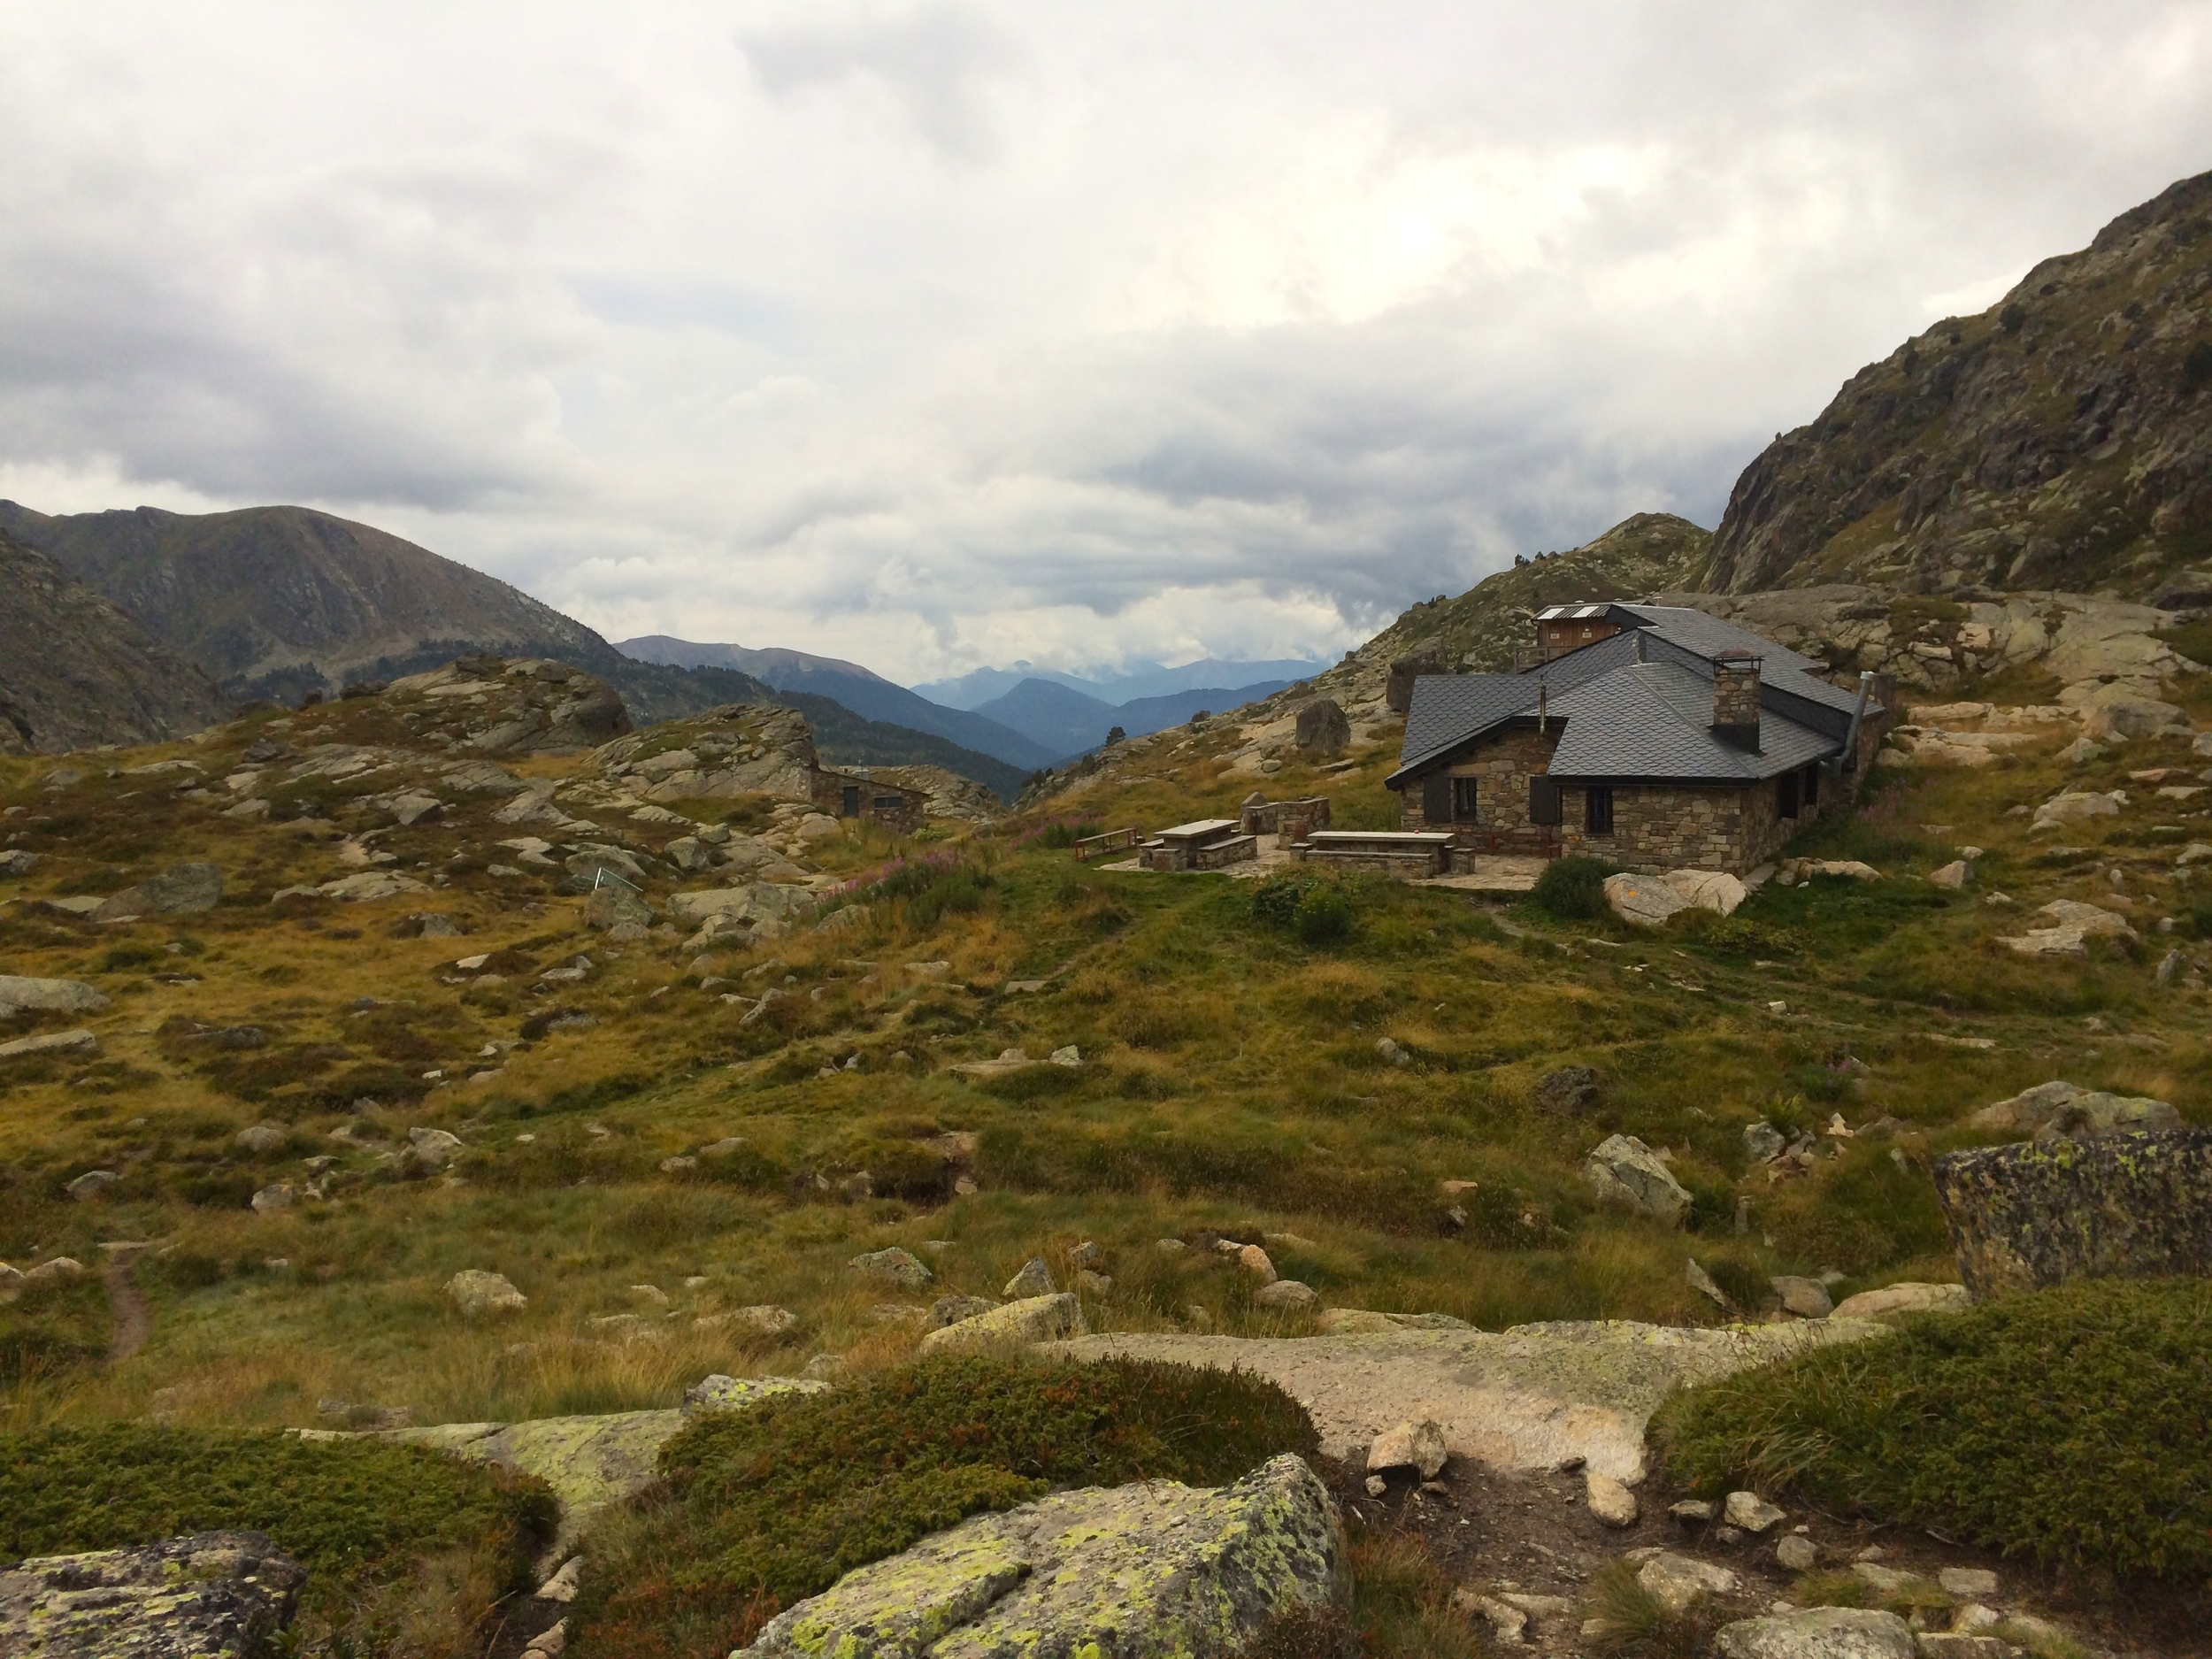 Refugi Guardat de Juclà. A hut that is an easy hike from Valle d'Incles.